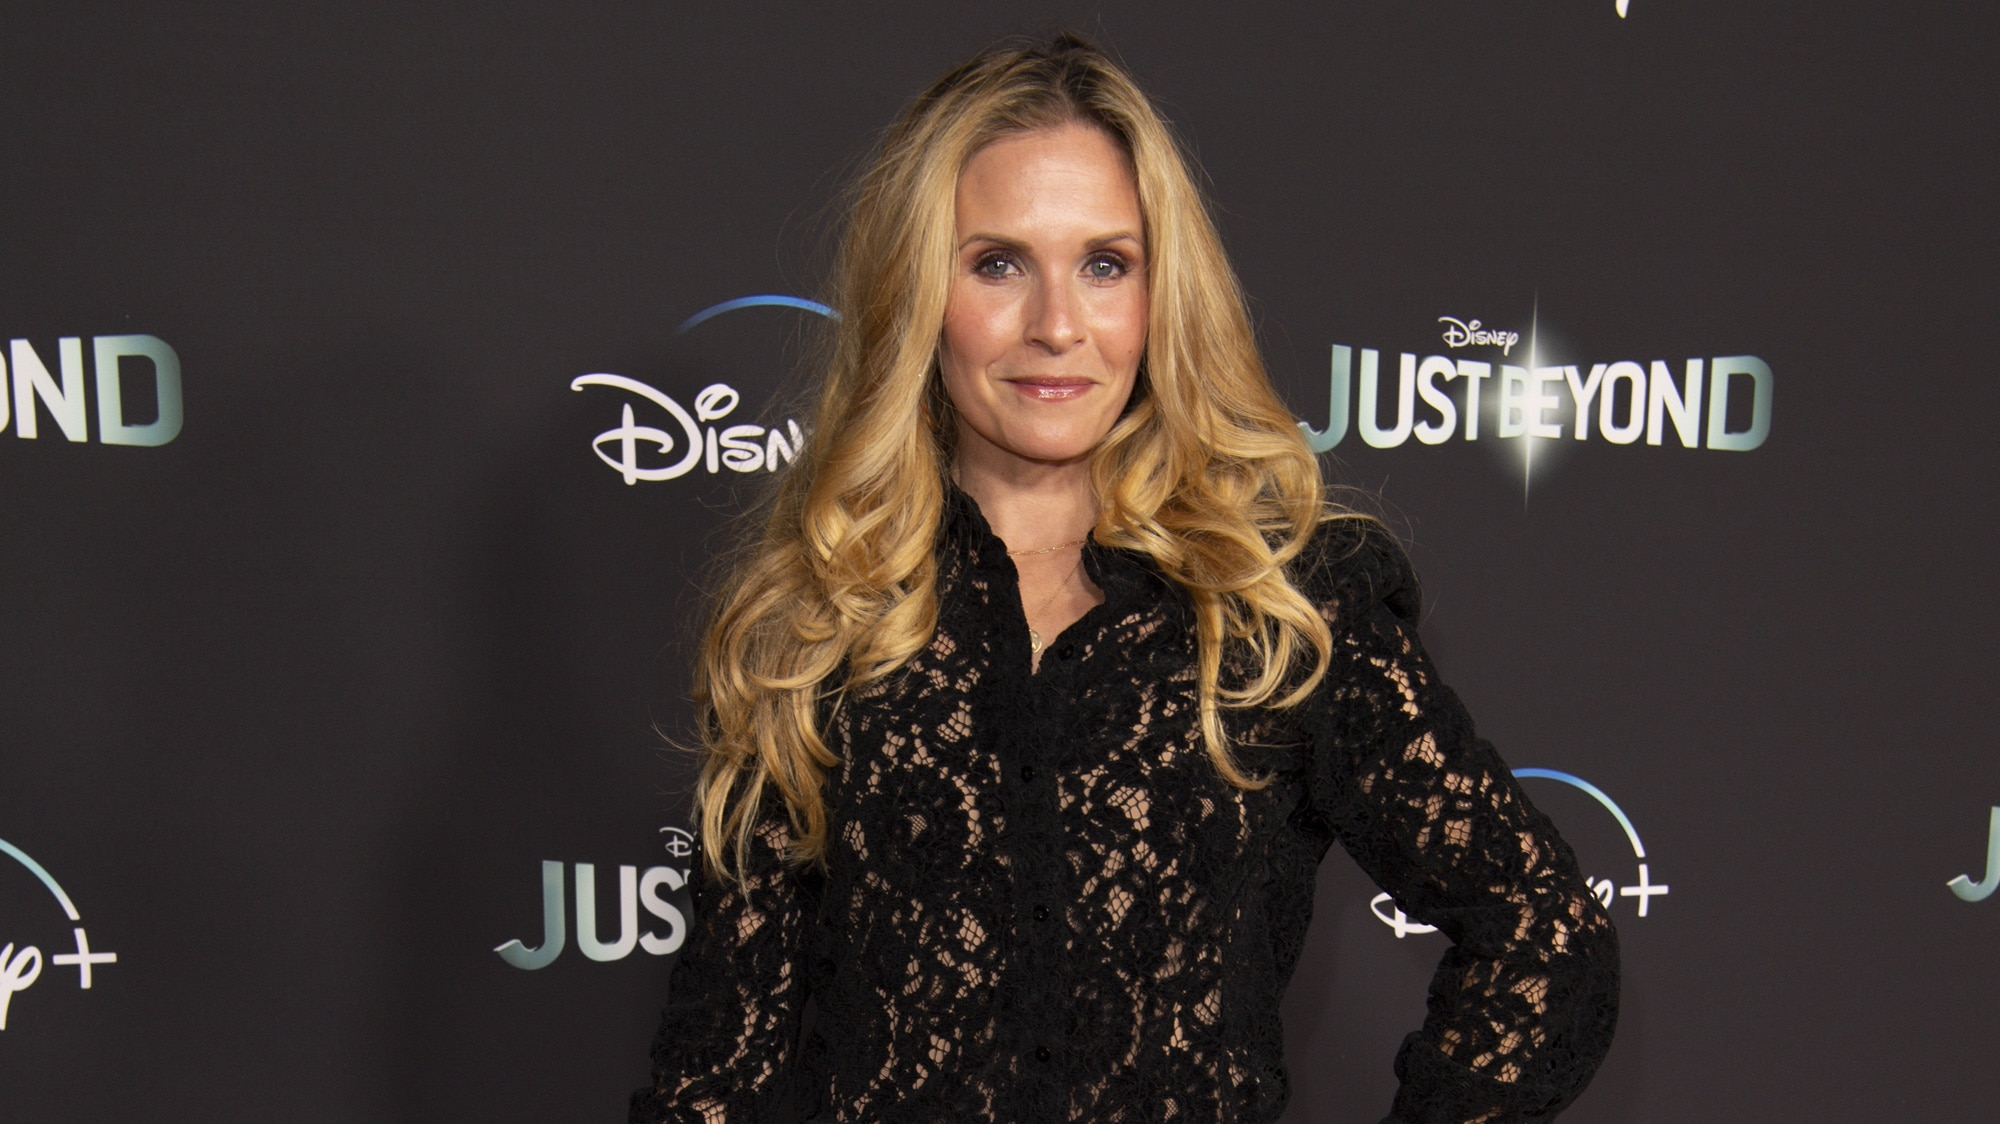 """JUST BEYOND - Stars of the R.L. Stine inspired Disney+ Original series """"Just Beyond"""" attended the Drive-In Premiere Event at West Los Angeles College, Tuesday, October 12. All episodes of """"Just Beyond"""" are available to stream Wednesday, October 13 on Disney+.  (Disney/Richard Harbaugh) SALLY PRESSMAN"""